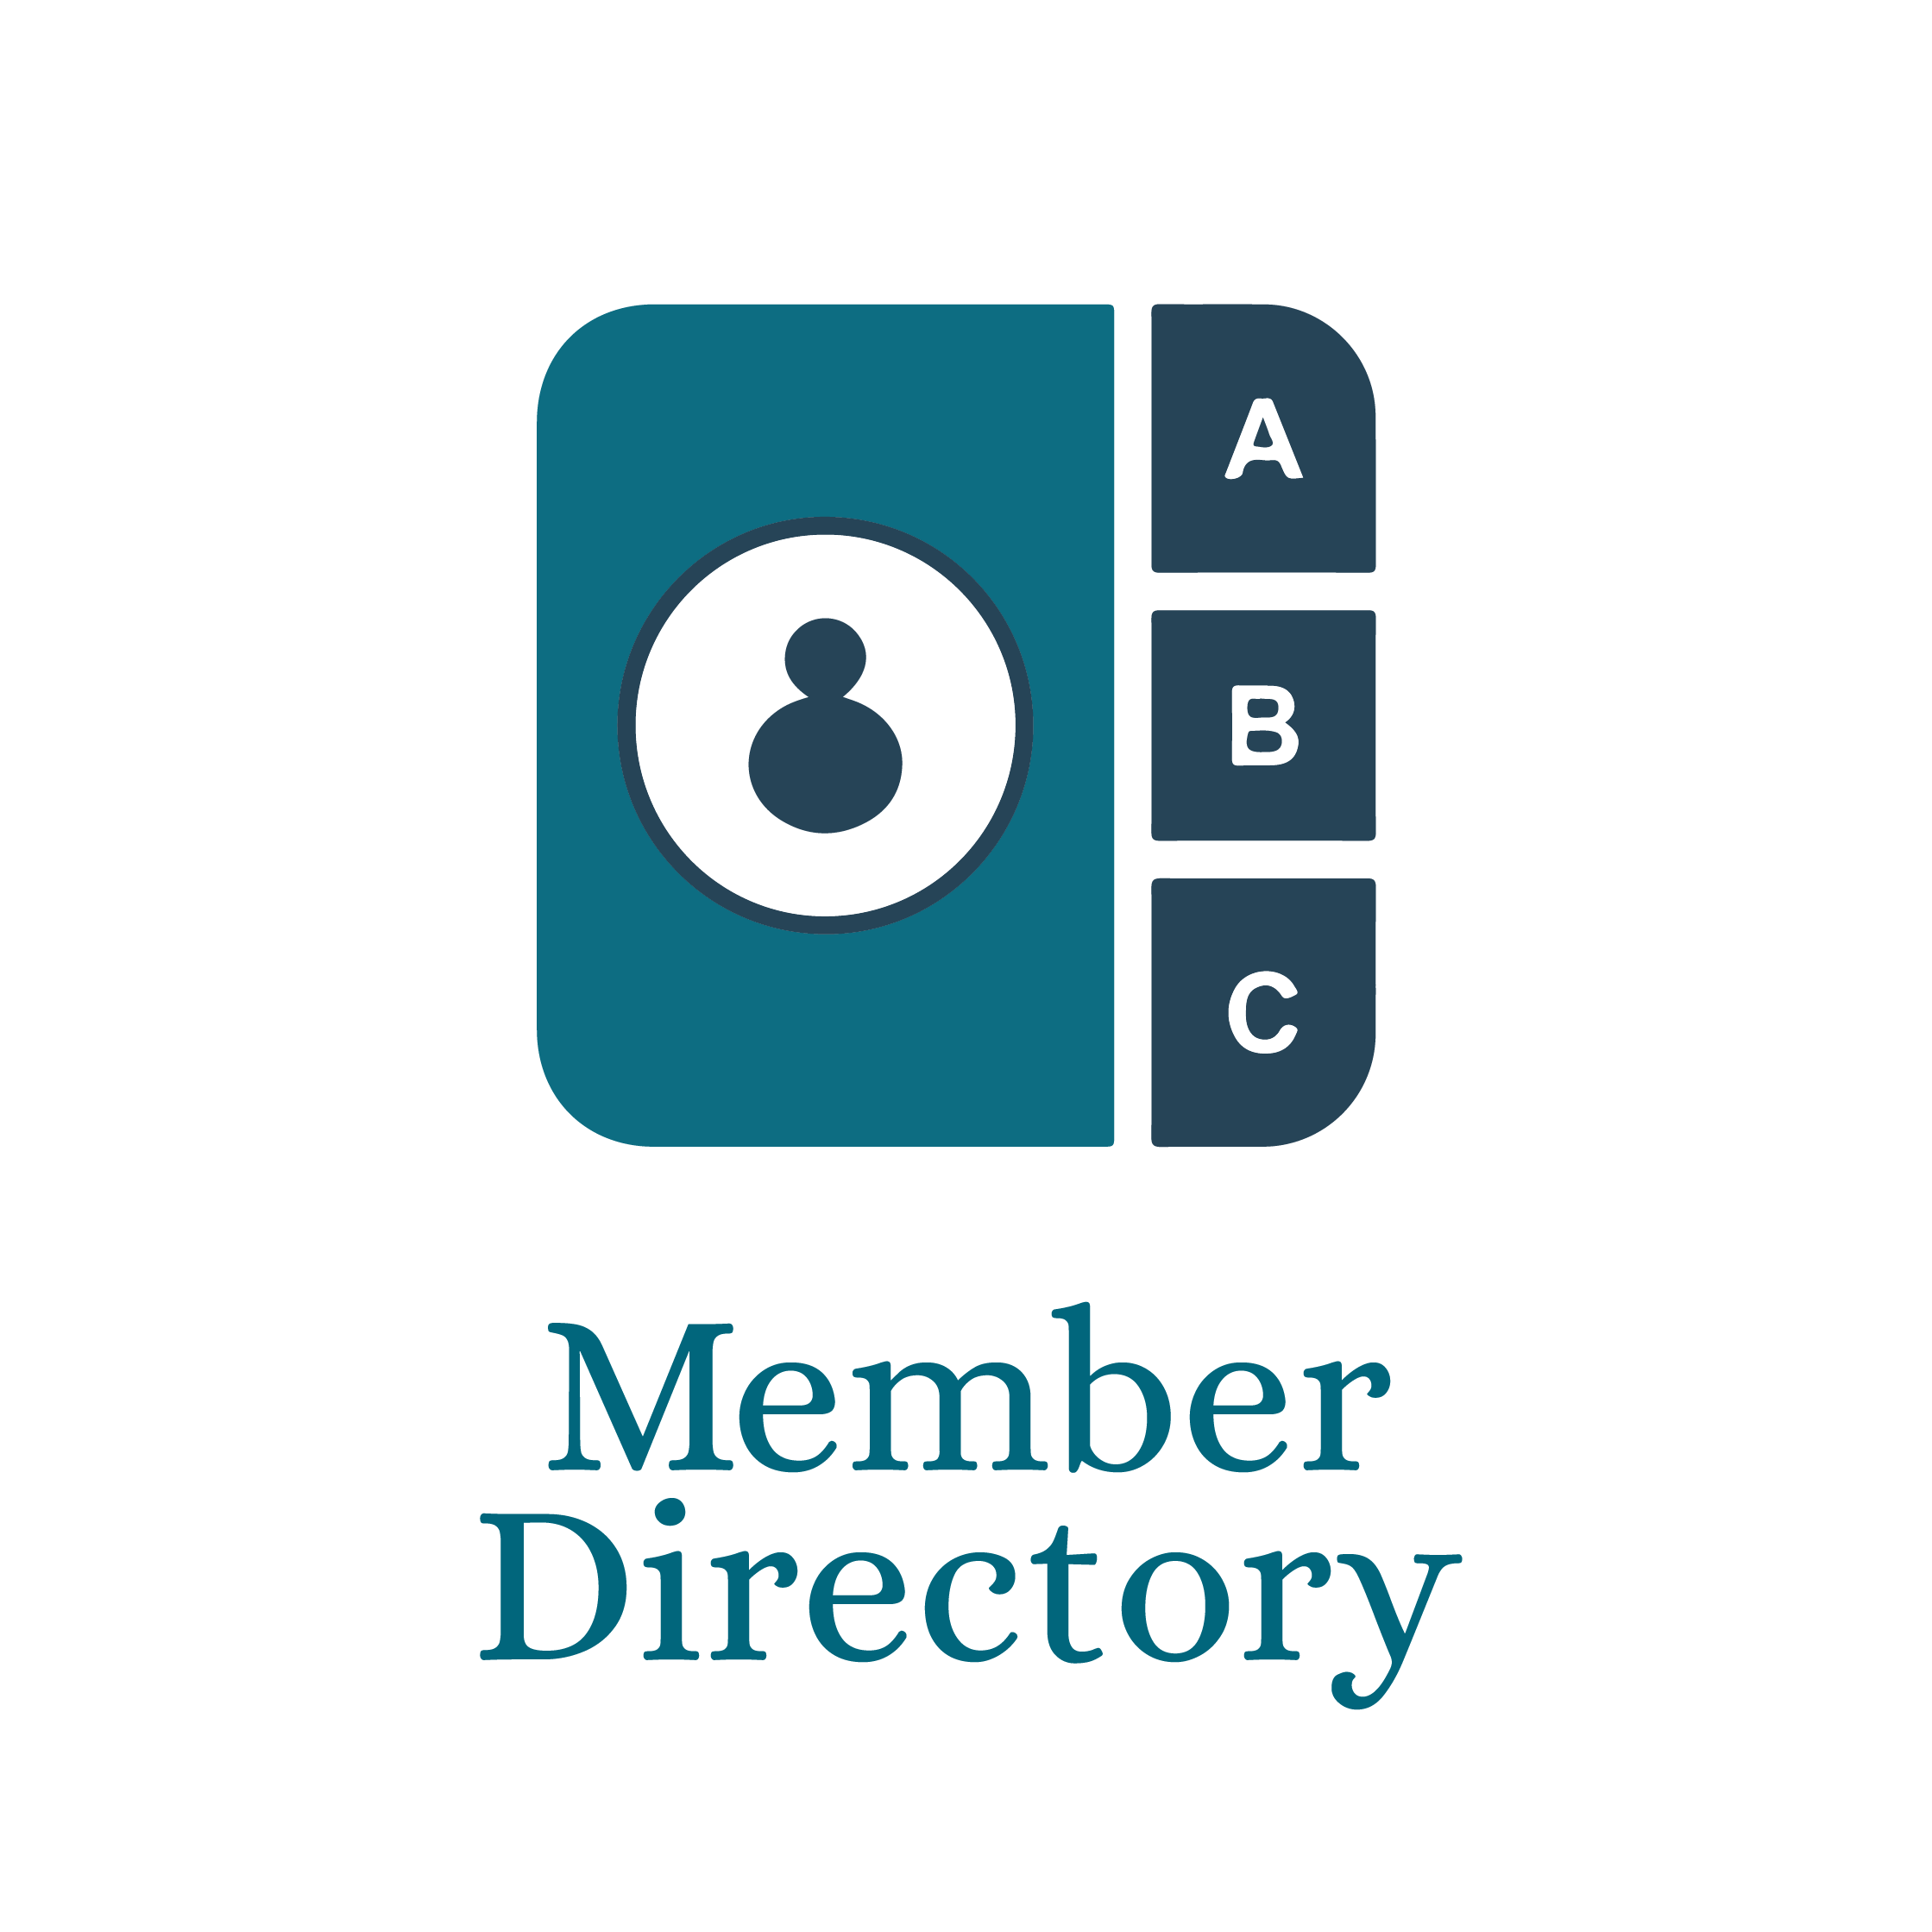 mc directory button-01.png